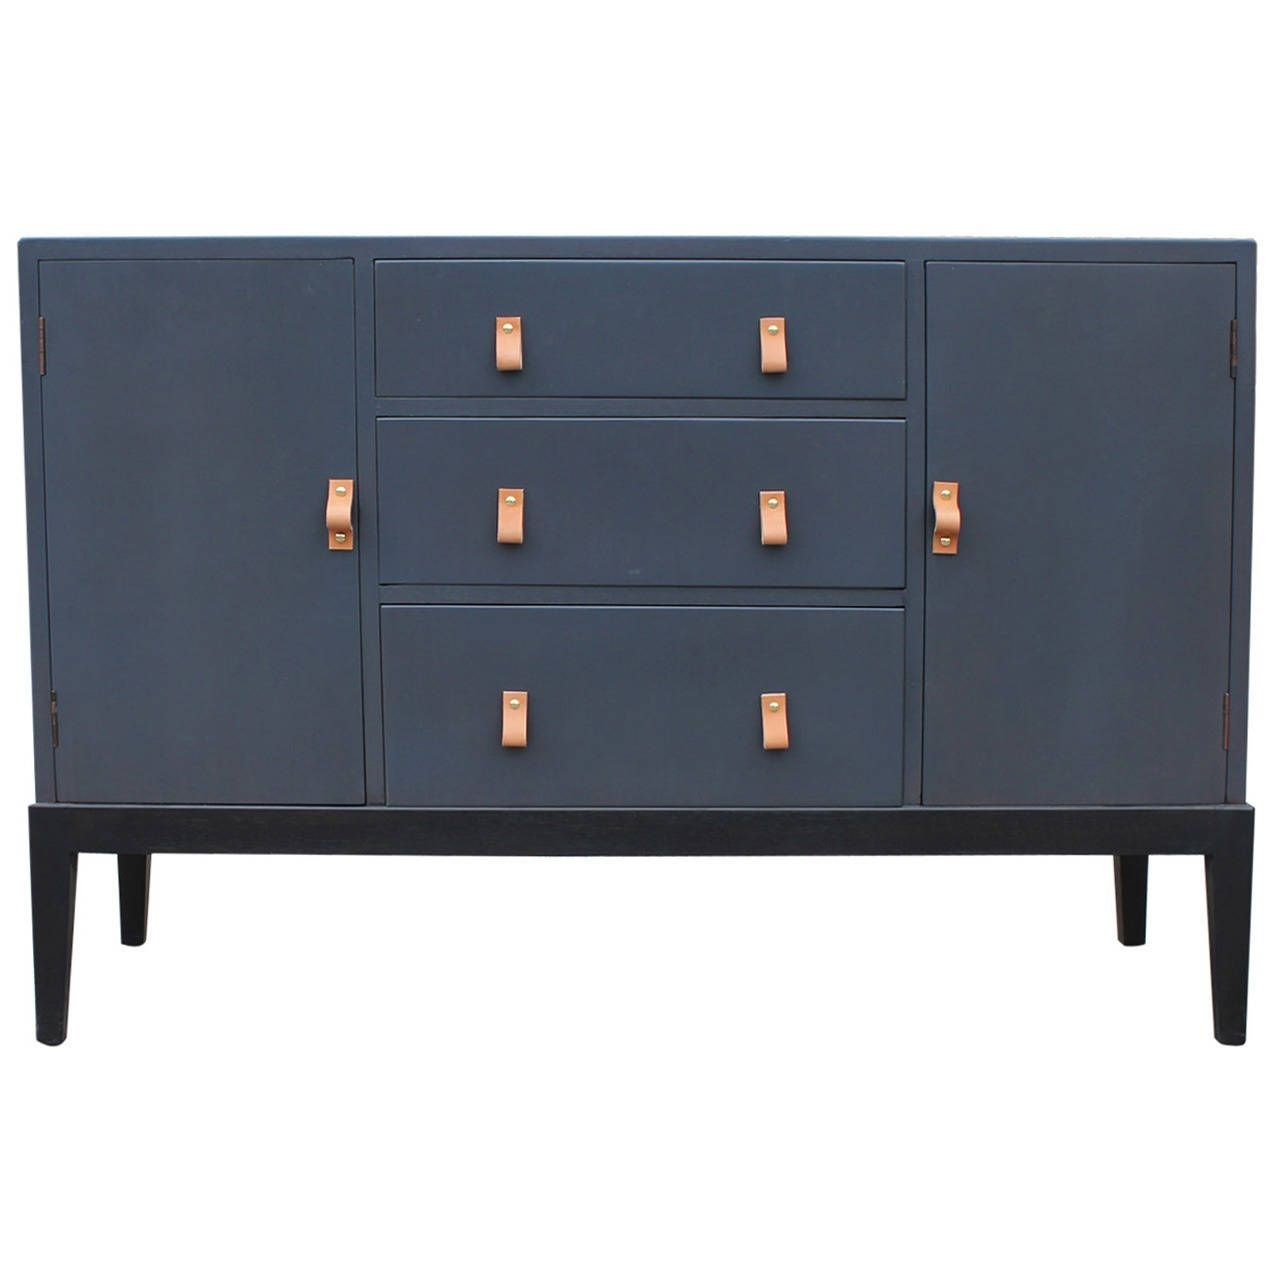 Superb Grey Sideboard Or Buffet With Leather Handles | Sideboards In Latest Bale Rustic Grey Sideboards (#20 of 20)